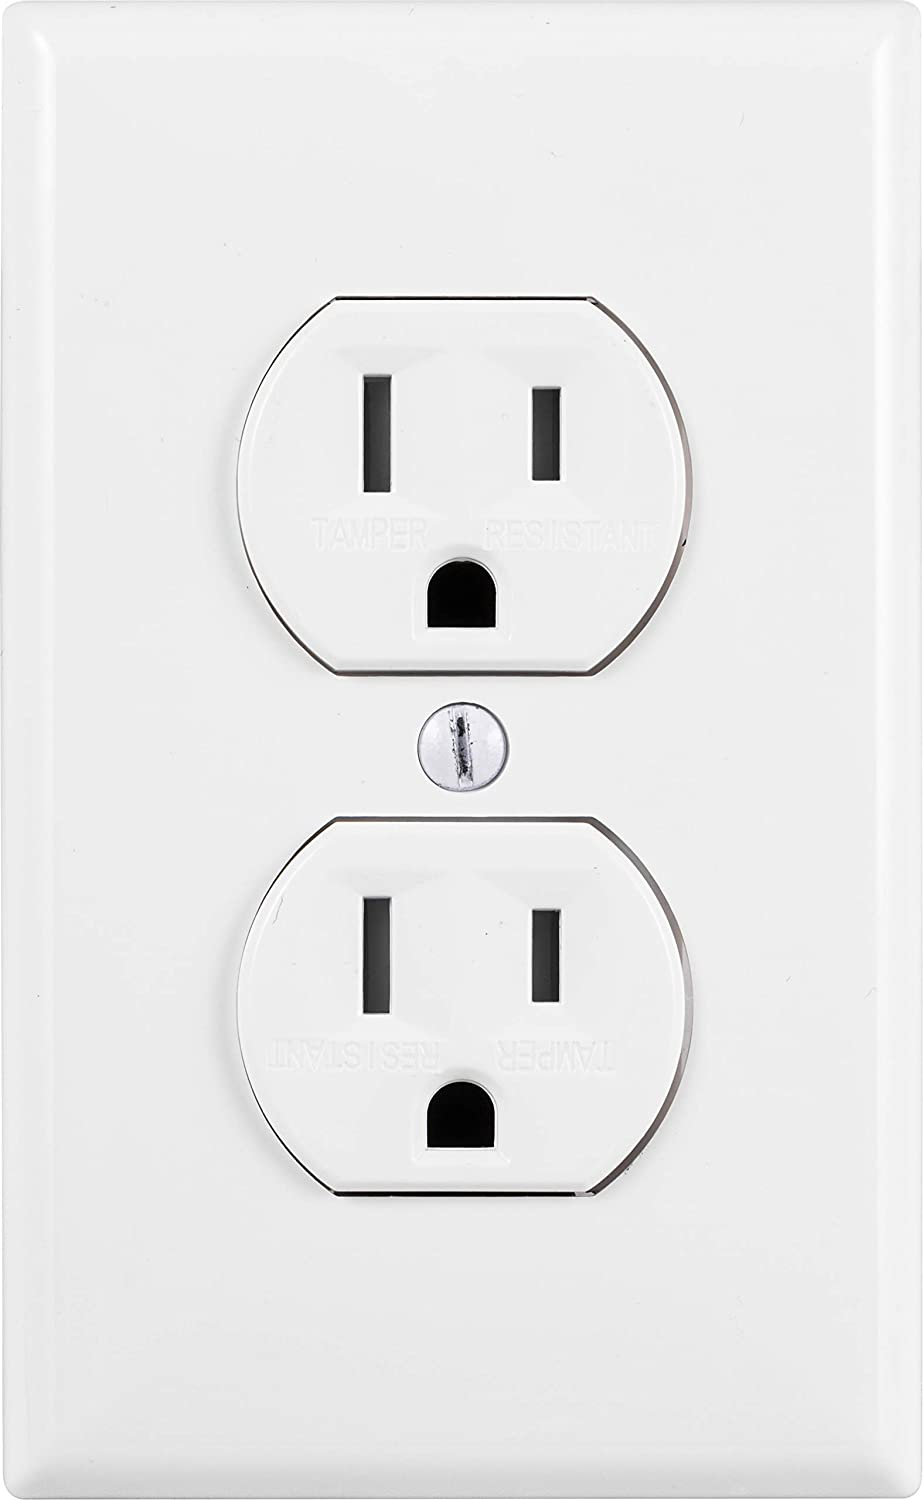 Tamper Resistant Outlets UL Listed GE Grounding Duplex Outlet Easy Install In Wall Receptacle 54263 Jasco White 15 Amp 3 Prong Electrical Socket